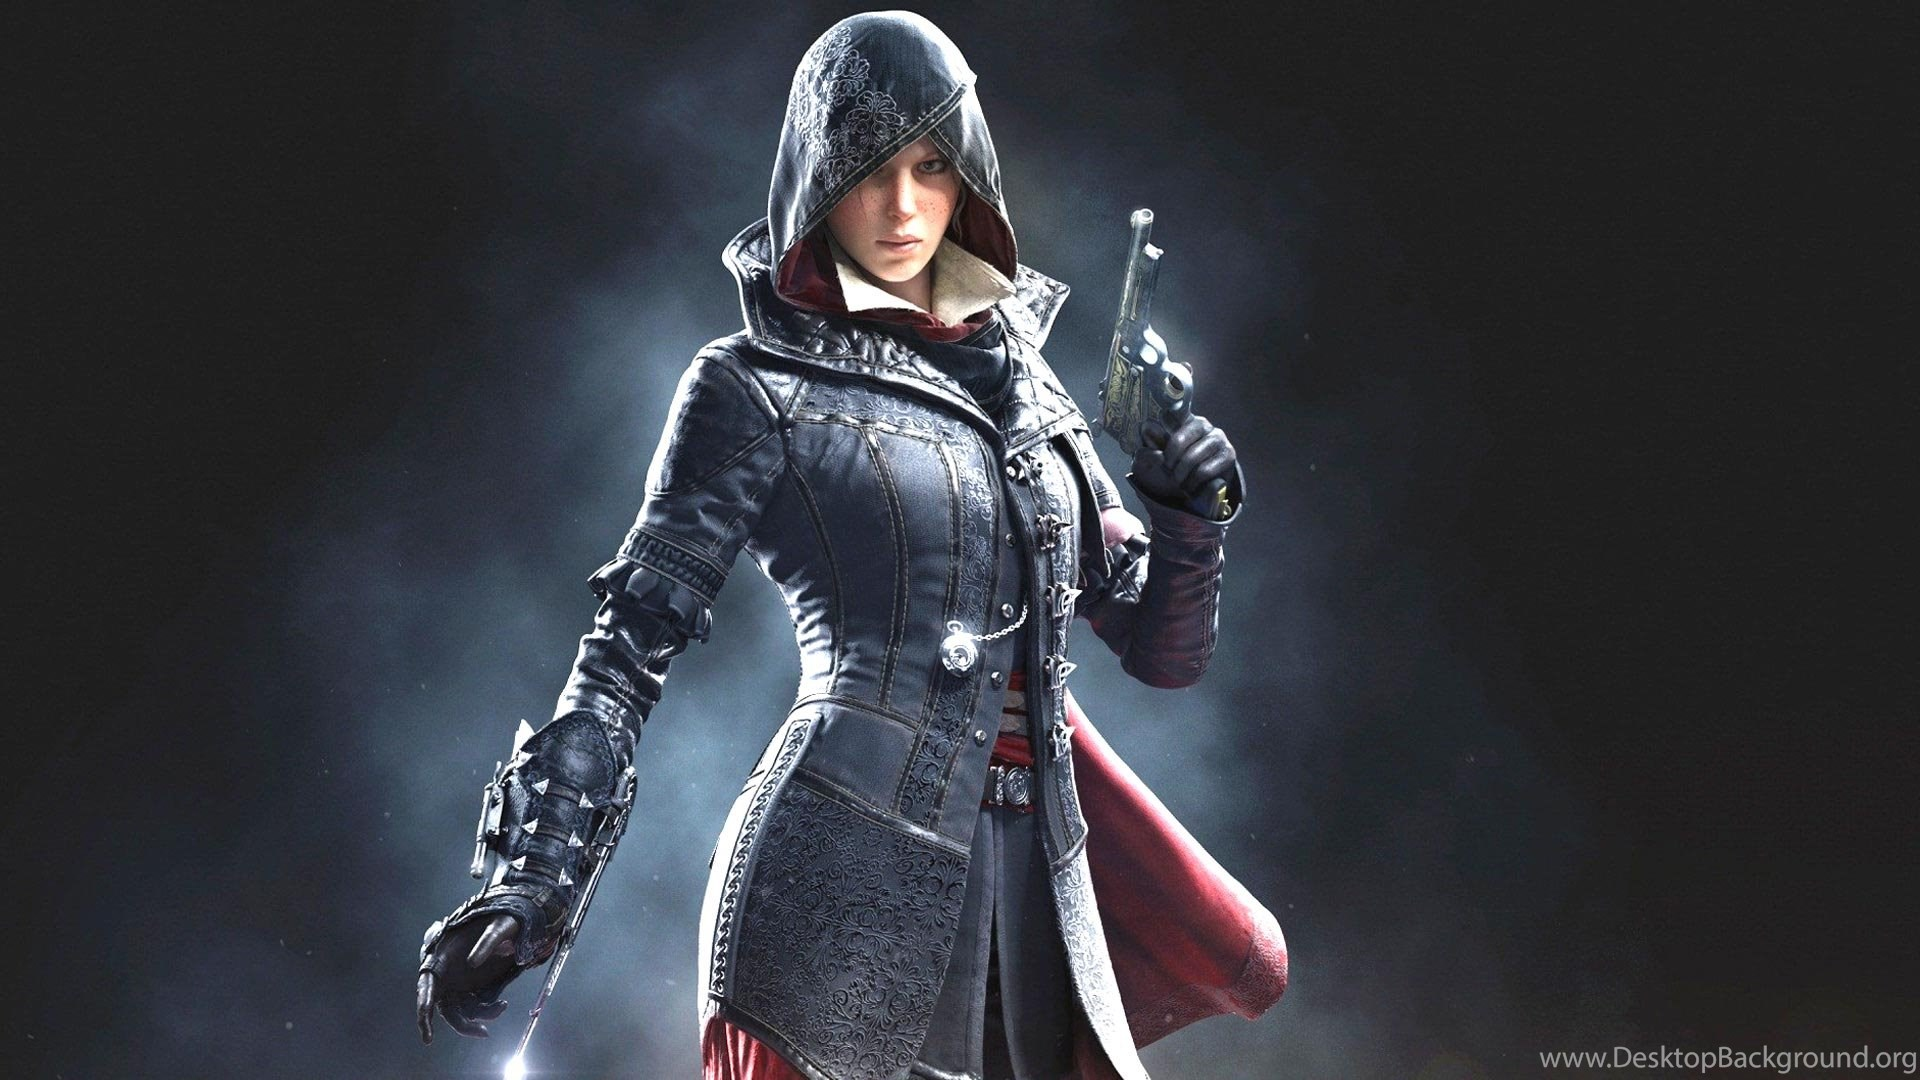 Assassin S Creed Syndicate Evie Frye Wallpapers Free Full Hd